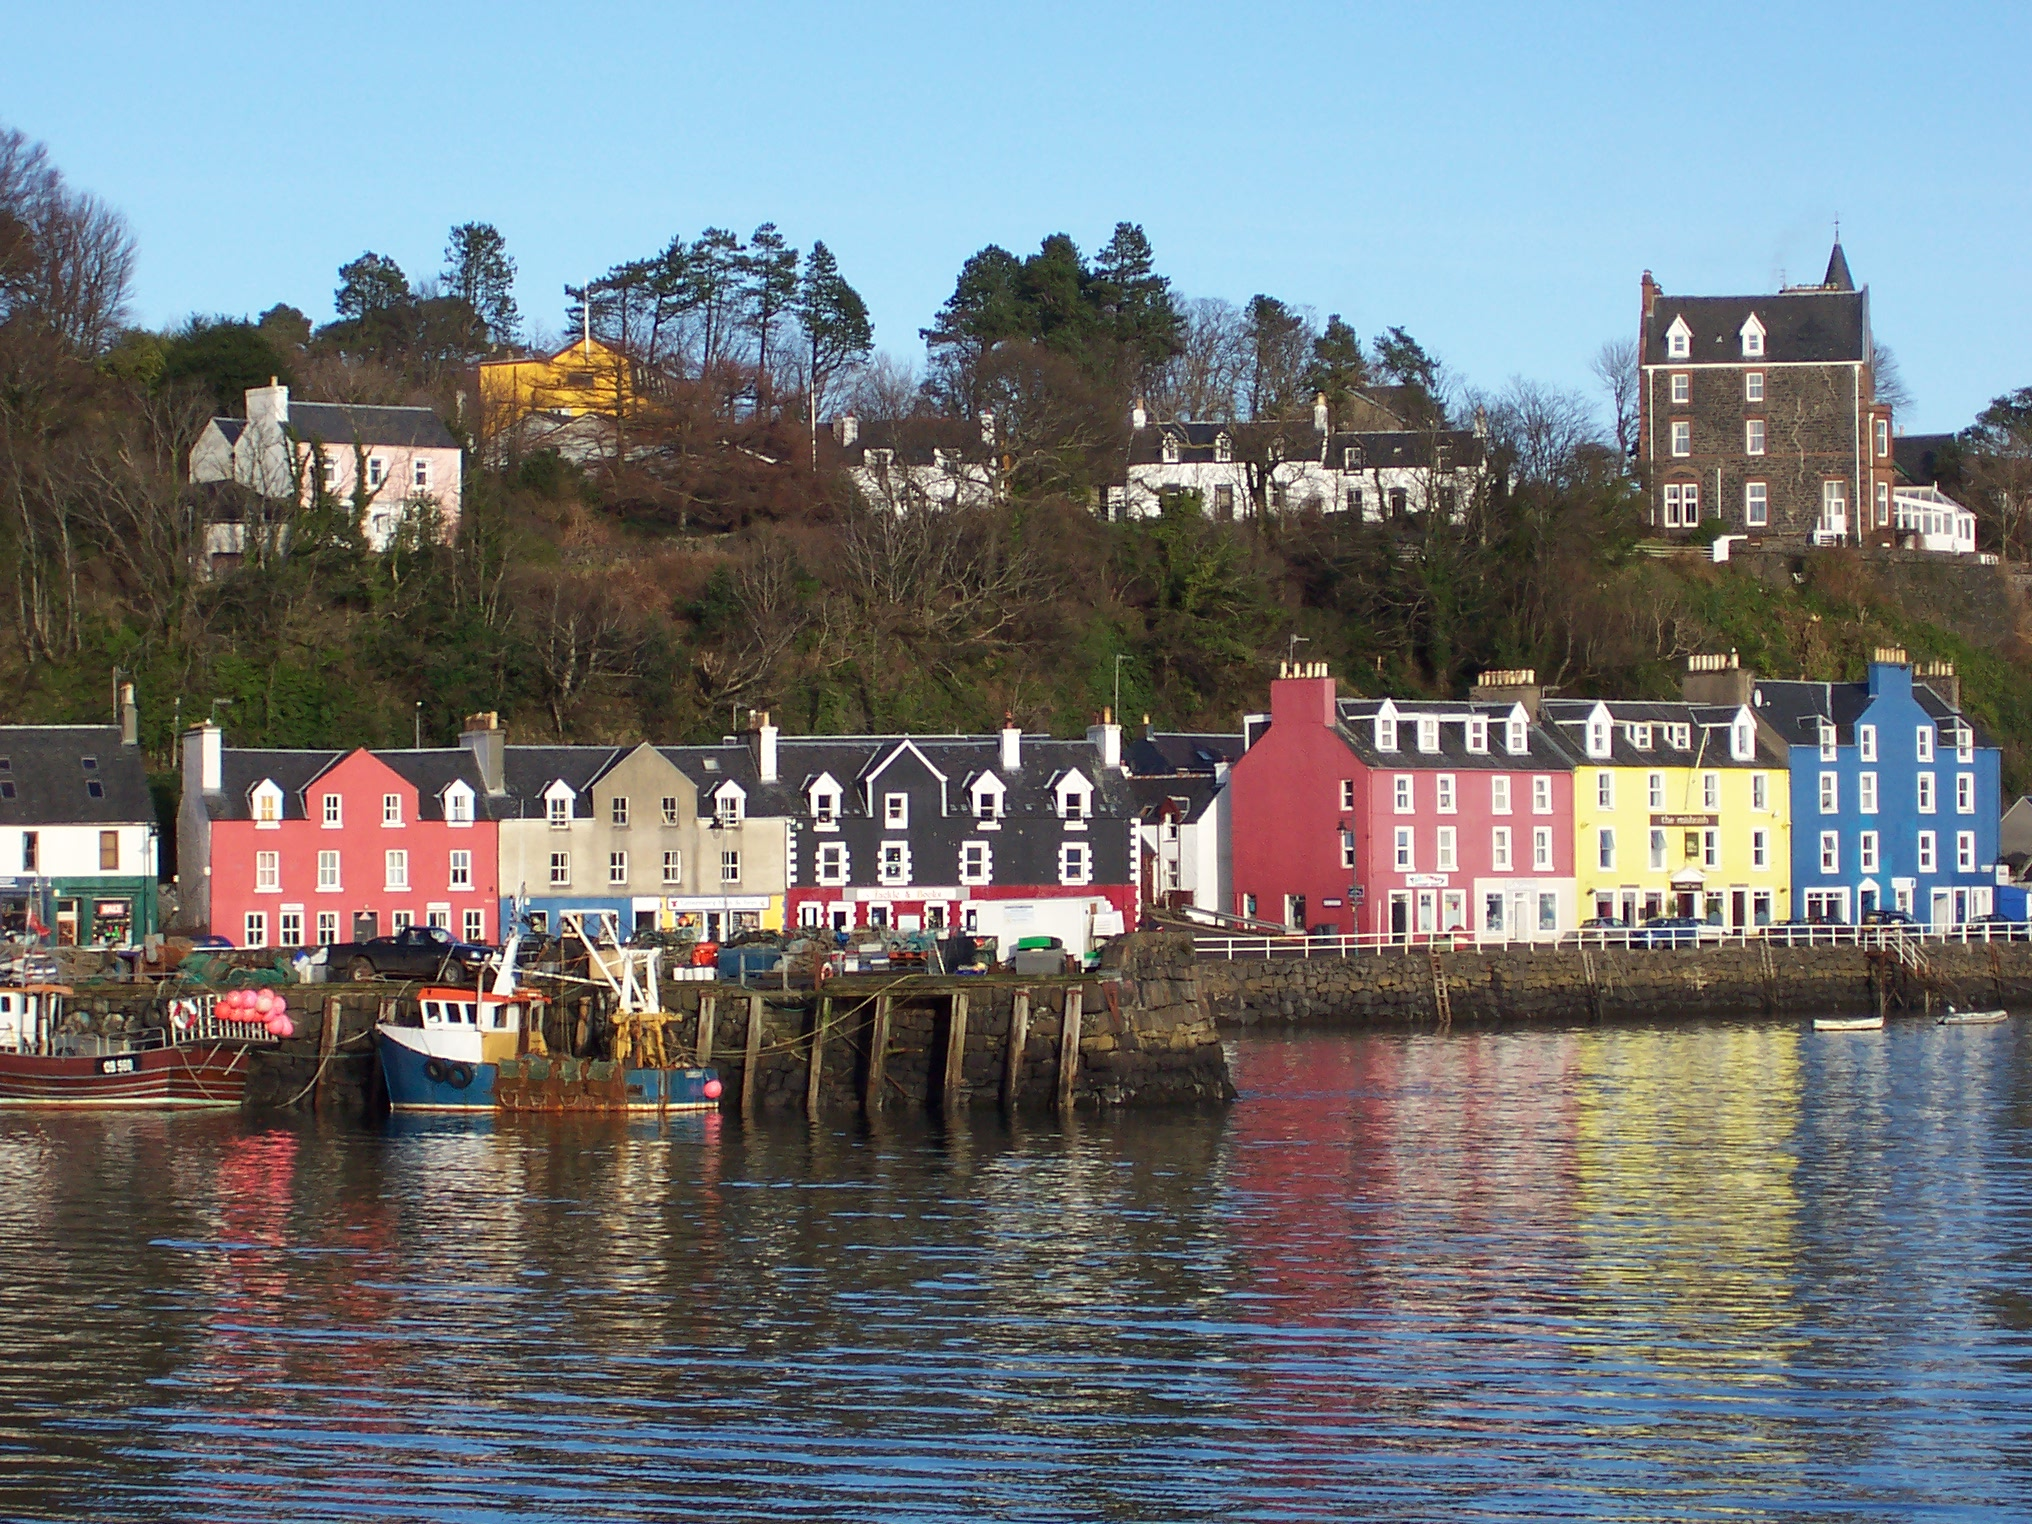 by england gay tobermory jpg 1080x810